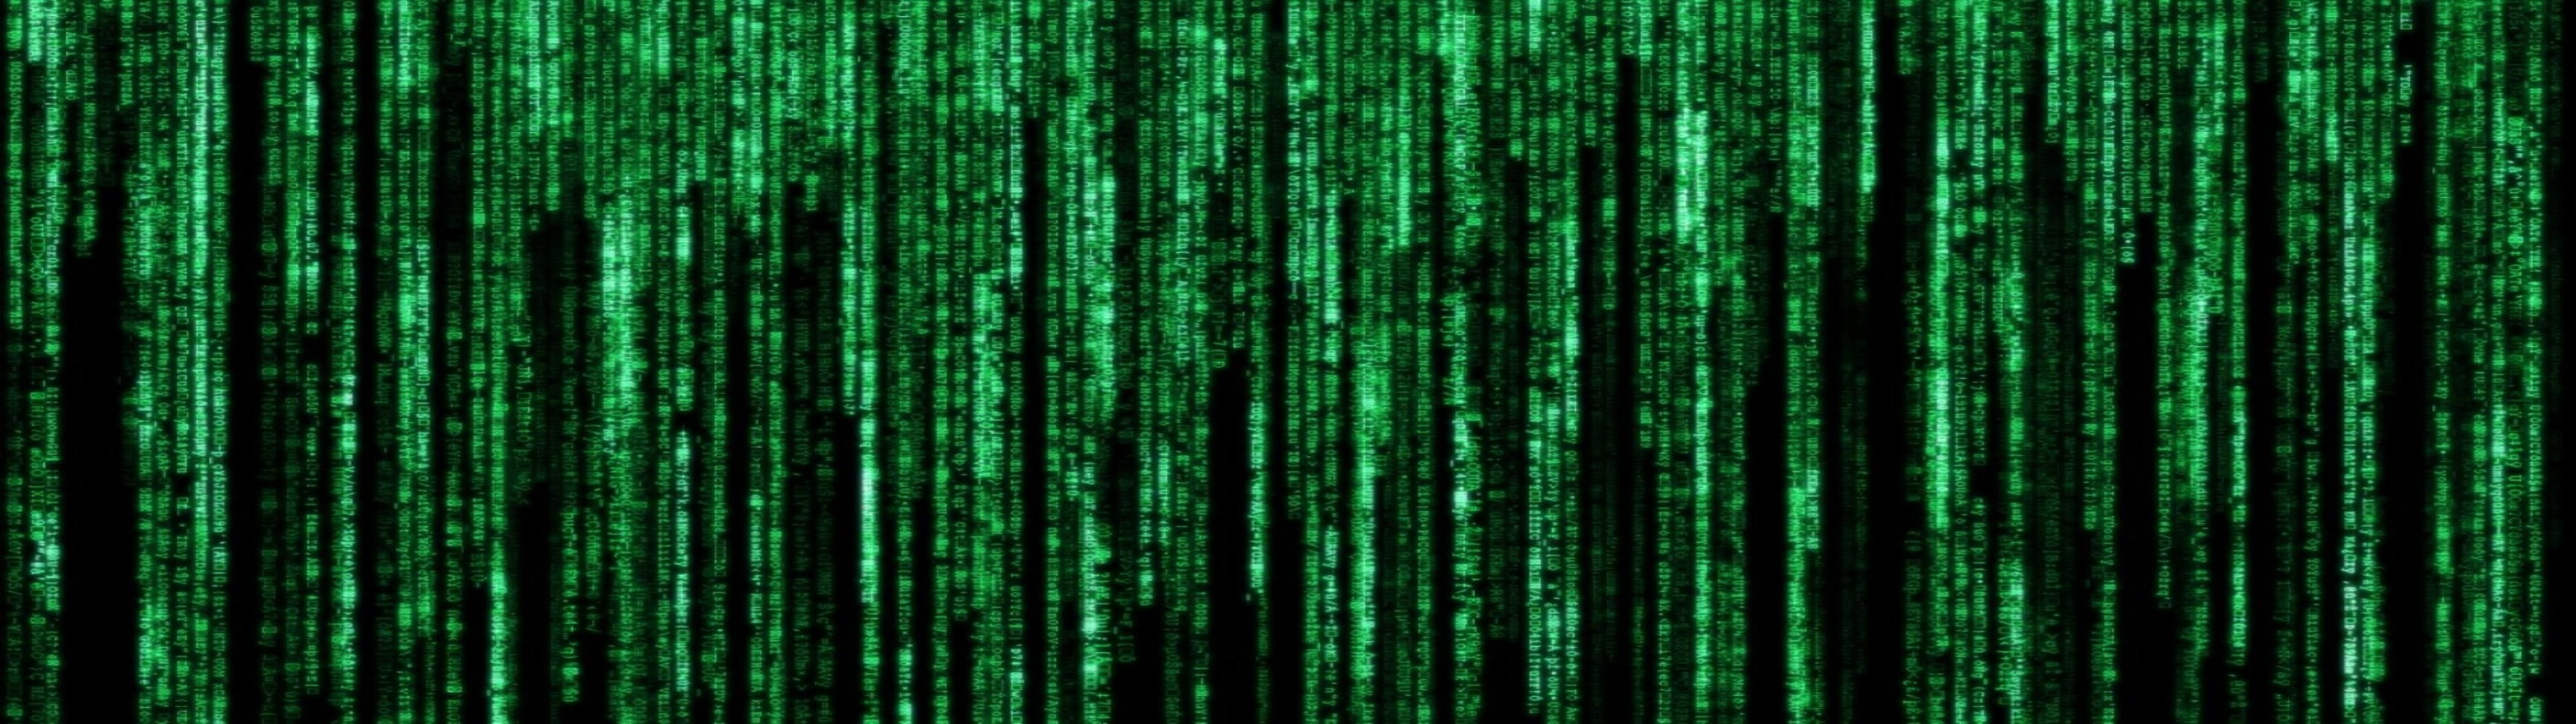 Matrix Wallpaper 3840x1080 | Kyle in 2019 | Wallpaper, Movie wallpapers, Moving wallpapers